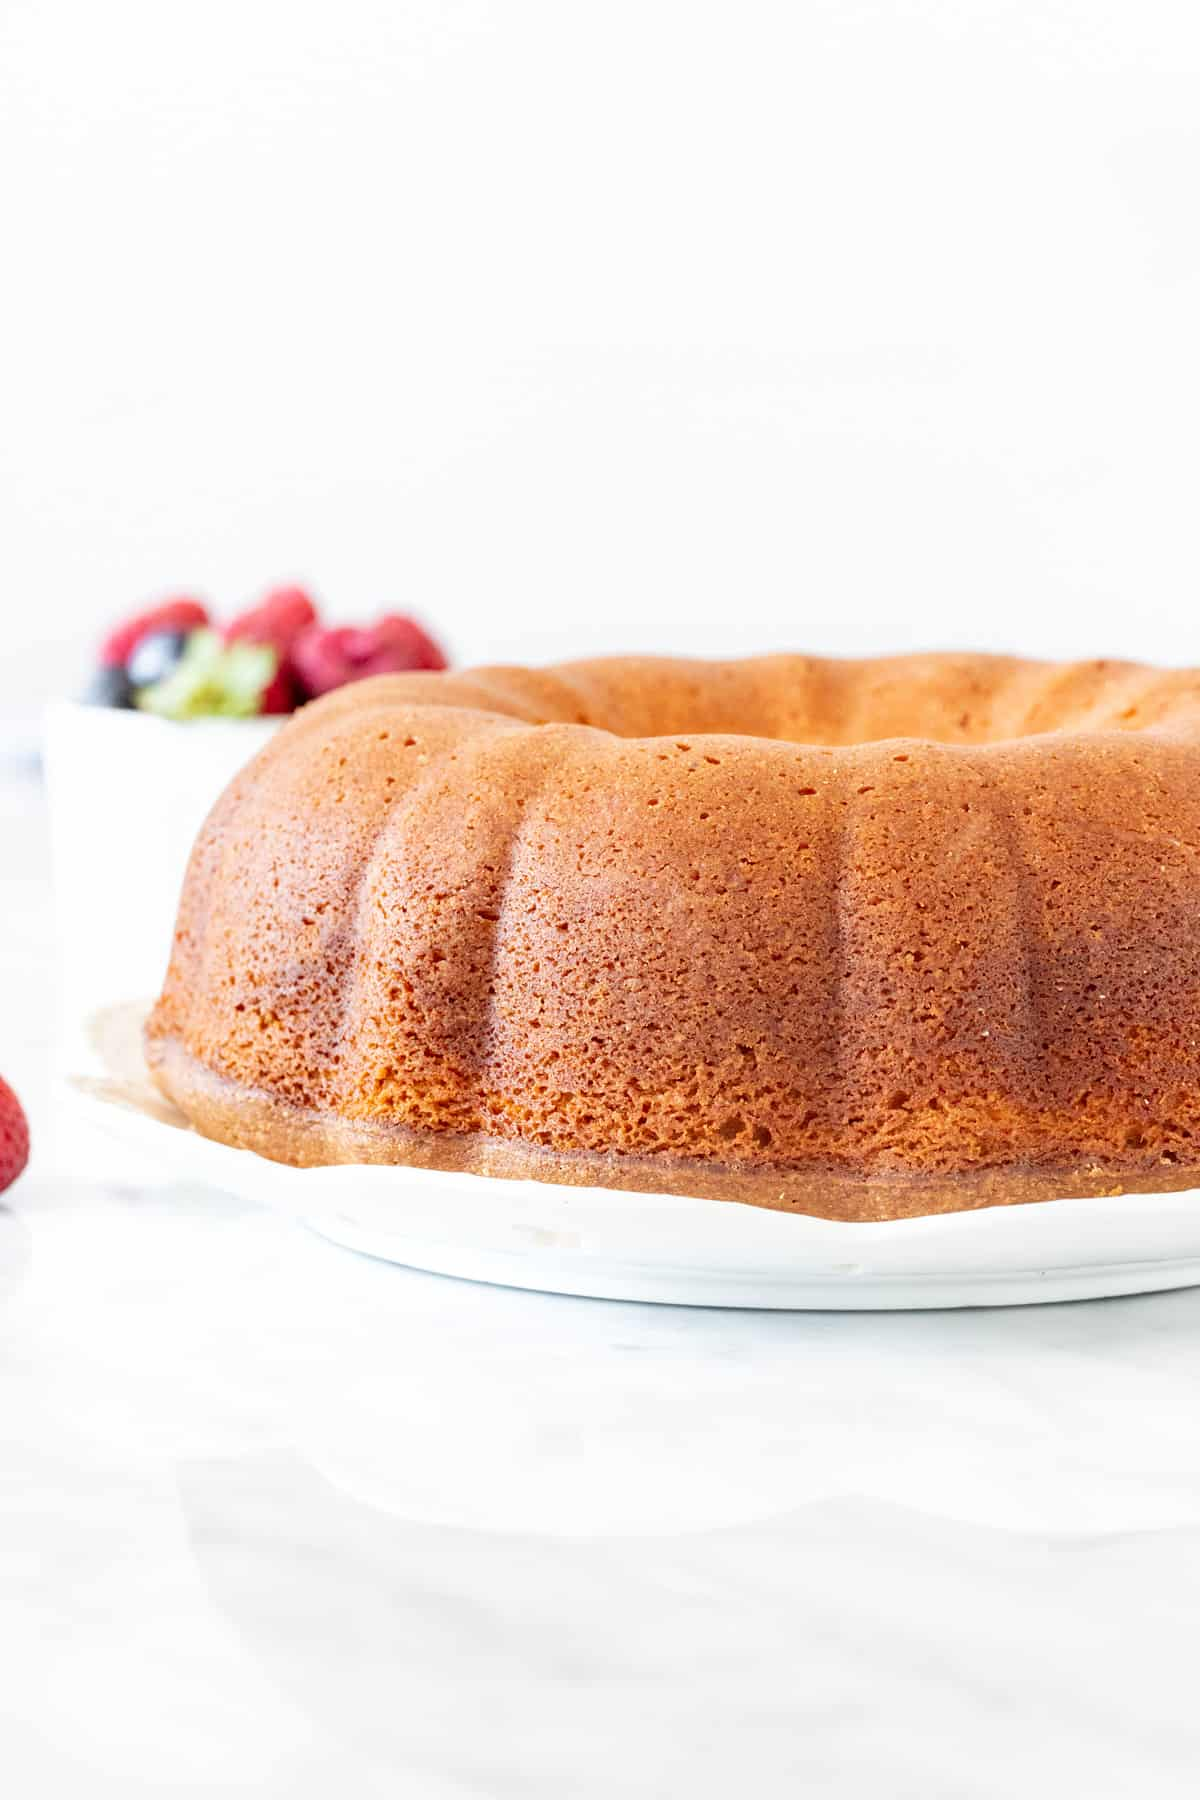 Cream cheese pound cake made in a bundt pan.